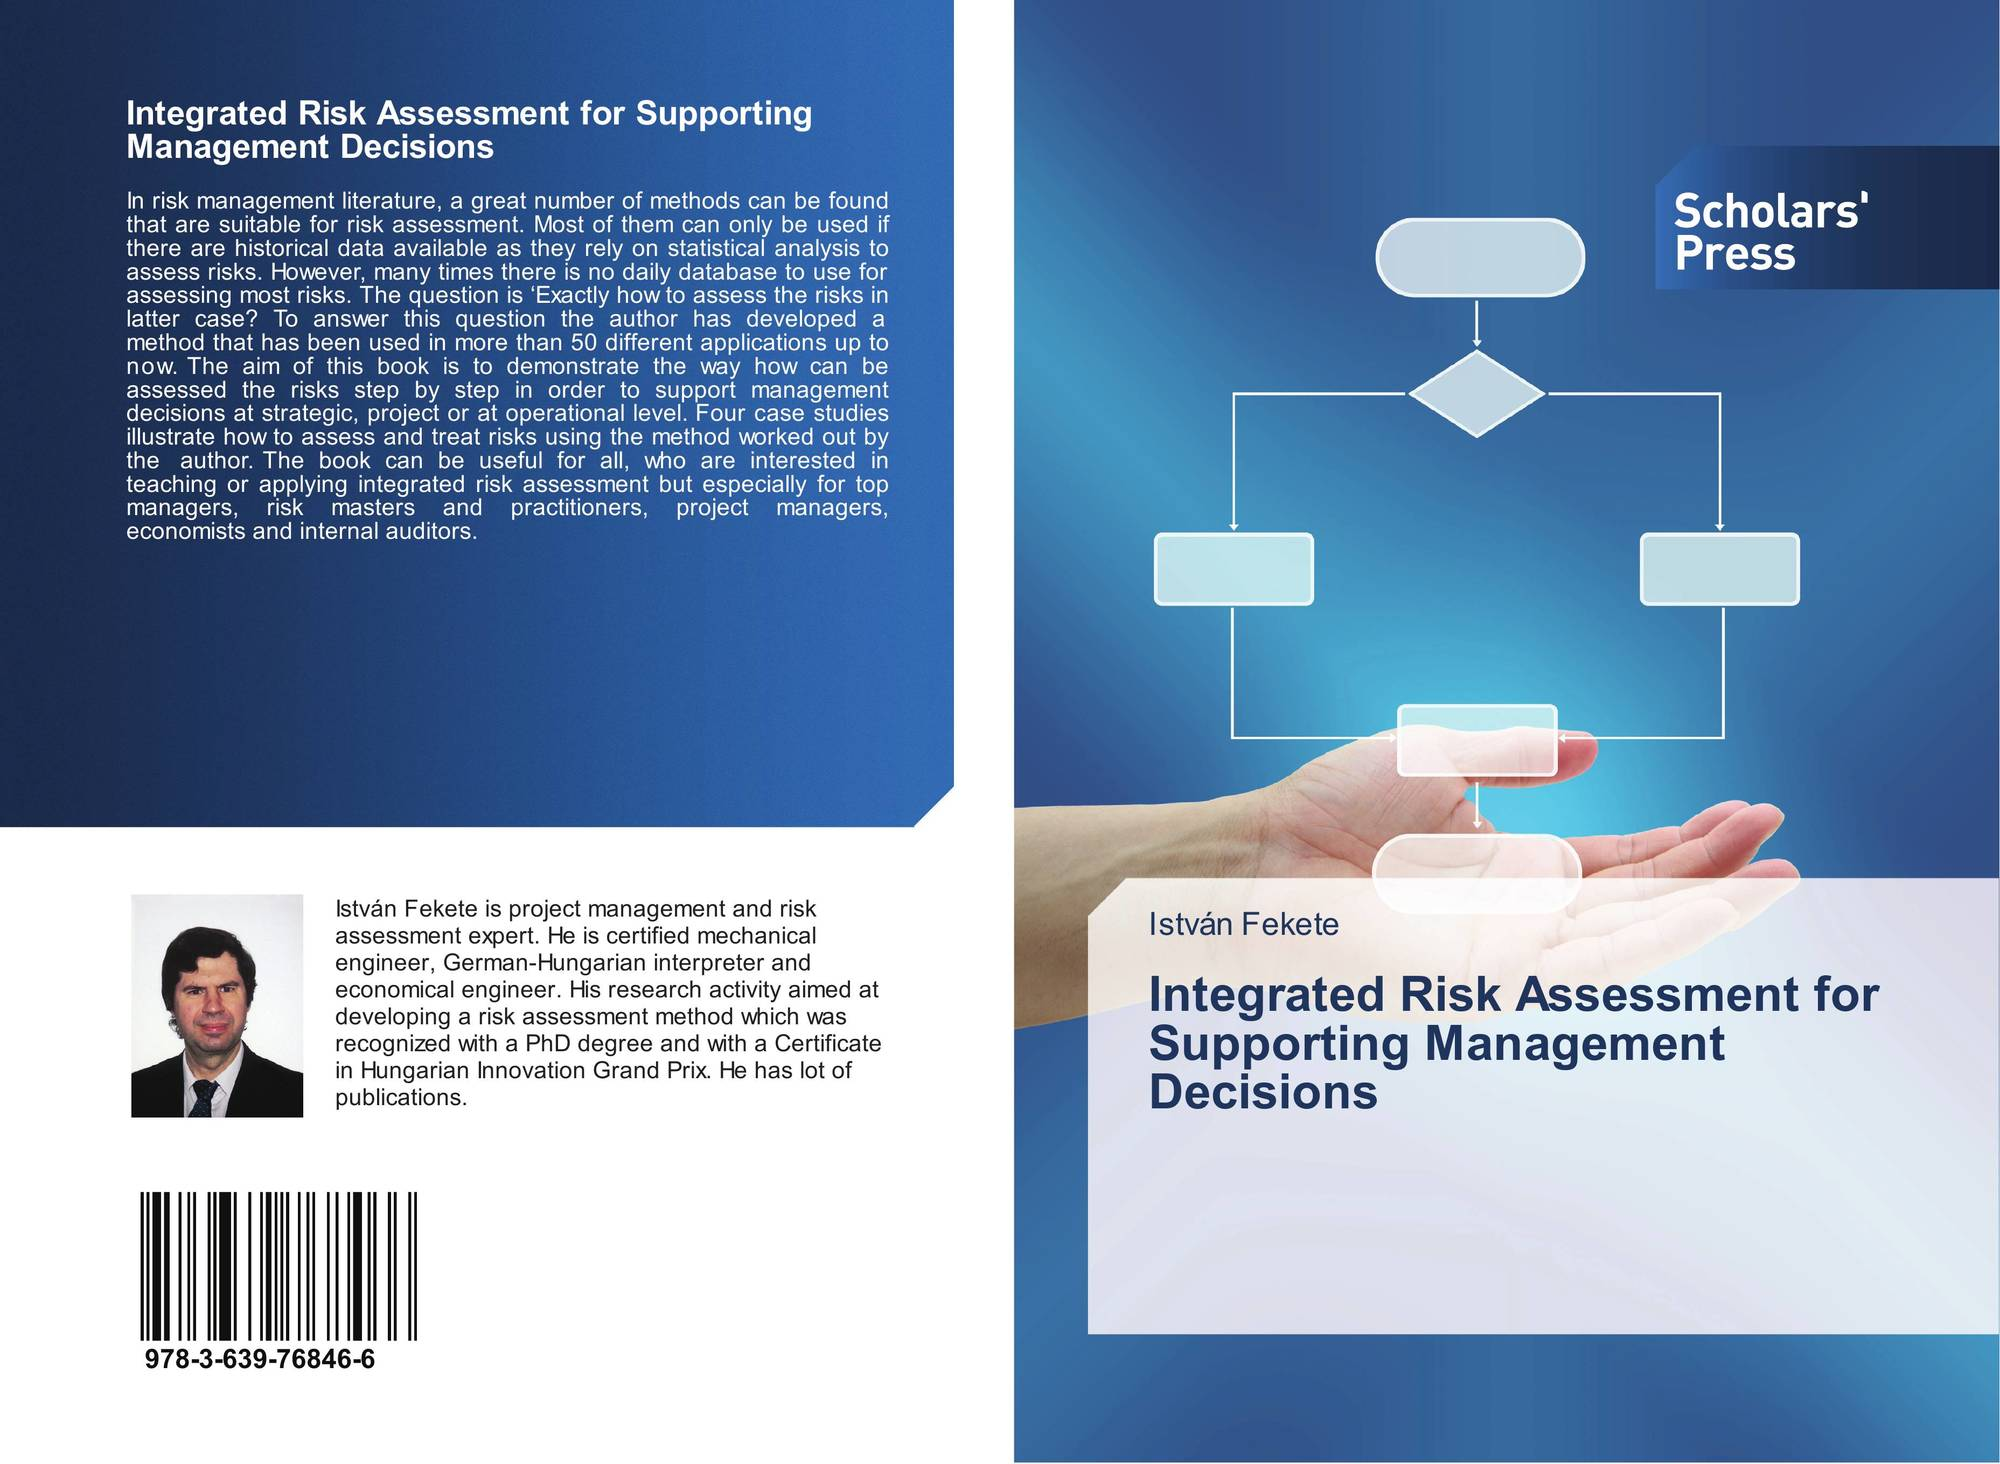 risk reduction techniques in management decision In essence, capital budgeting techniques provide management with a useful method for analyzing the profitability of potential investments that have dissimilar earnings characteristics decision-making, functions, management, quantitative techniques in decision making.